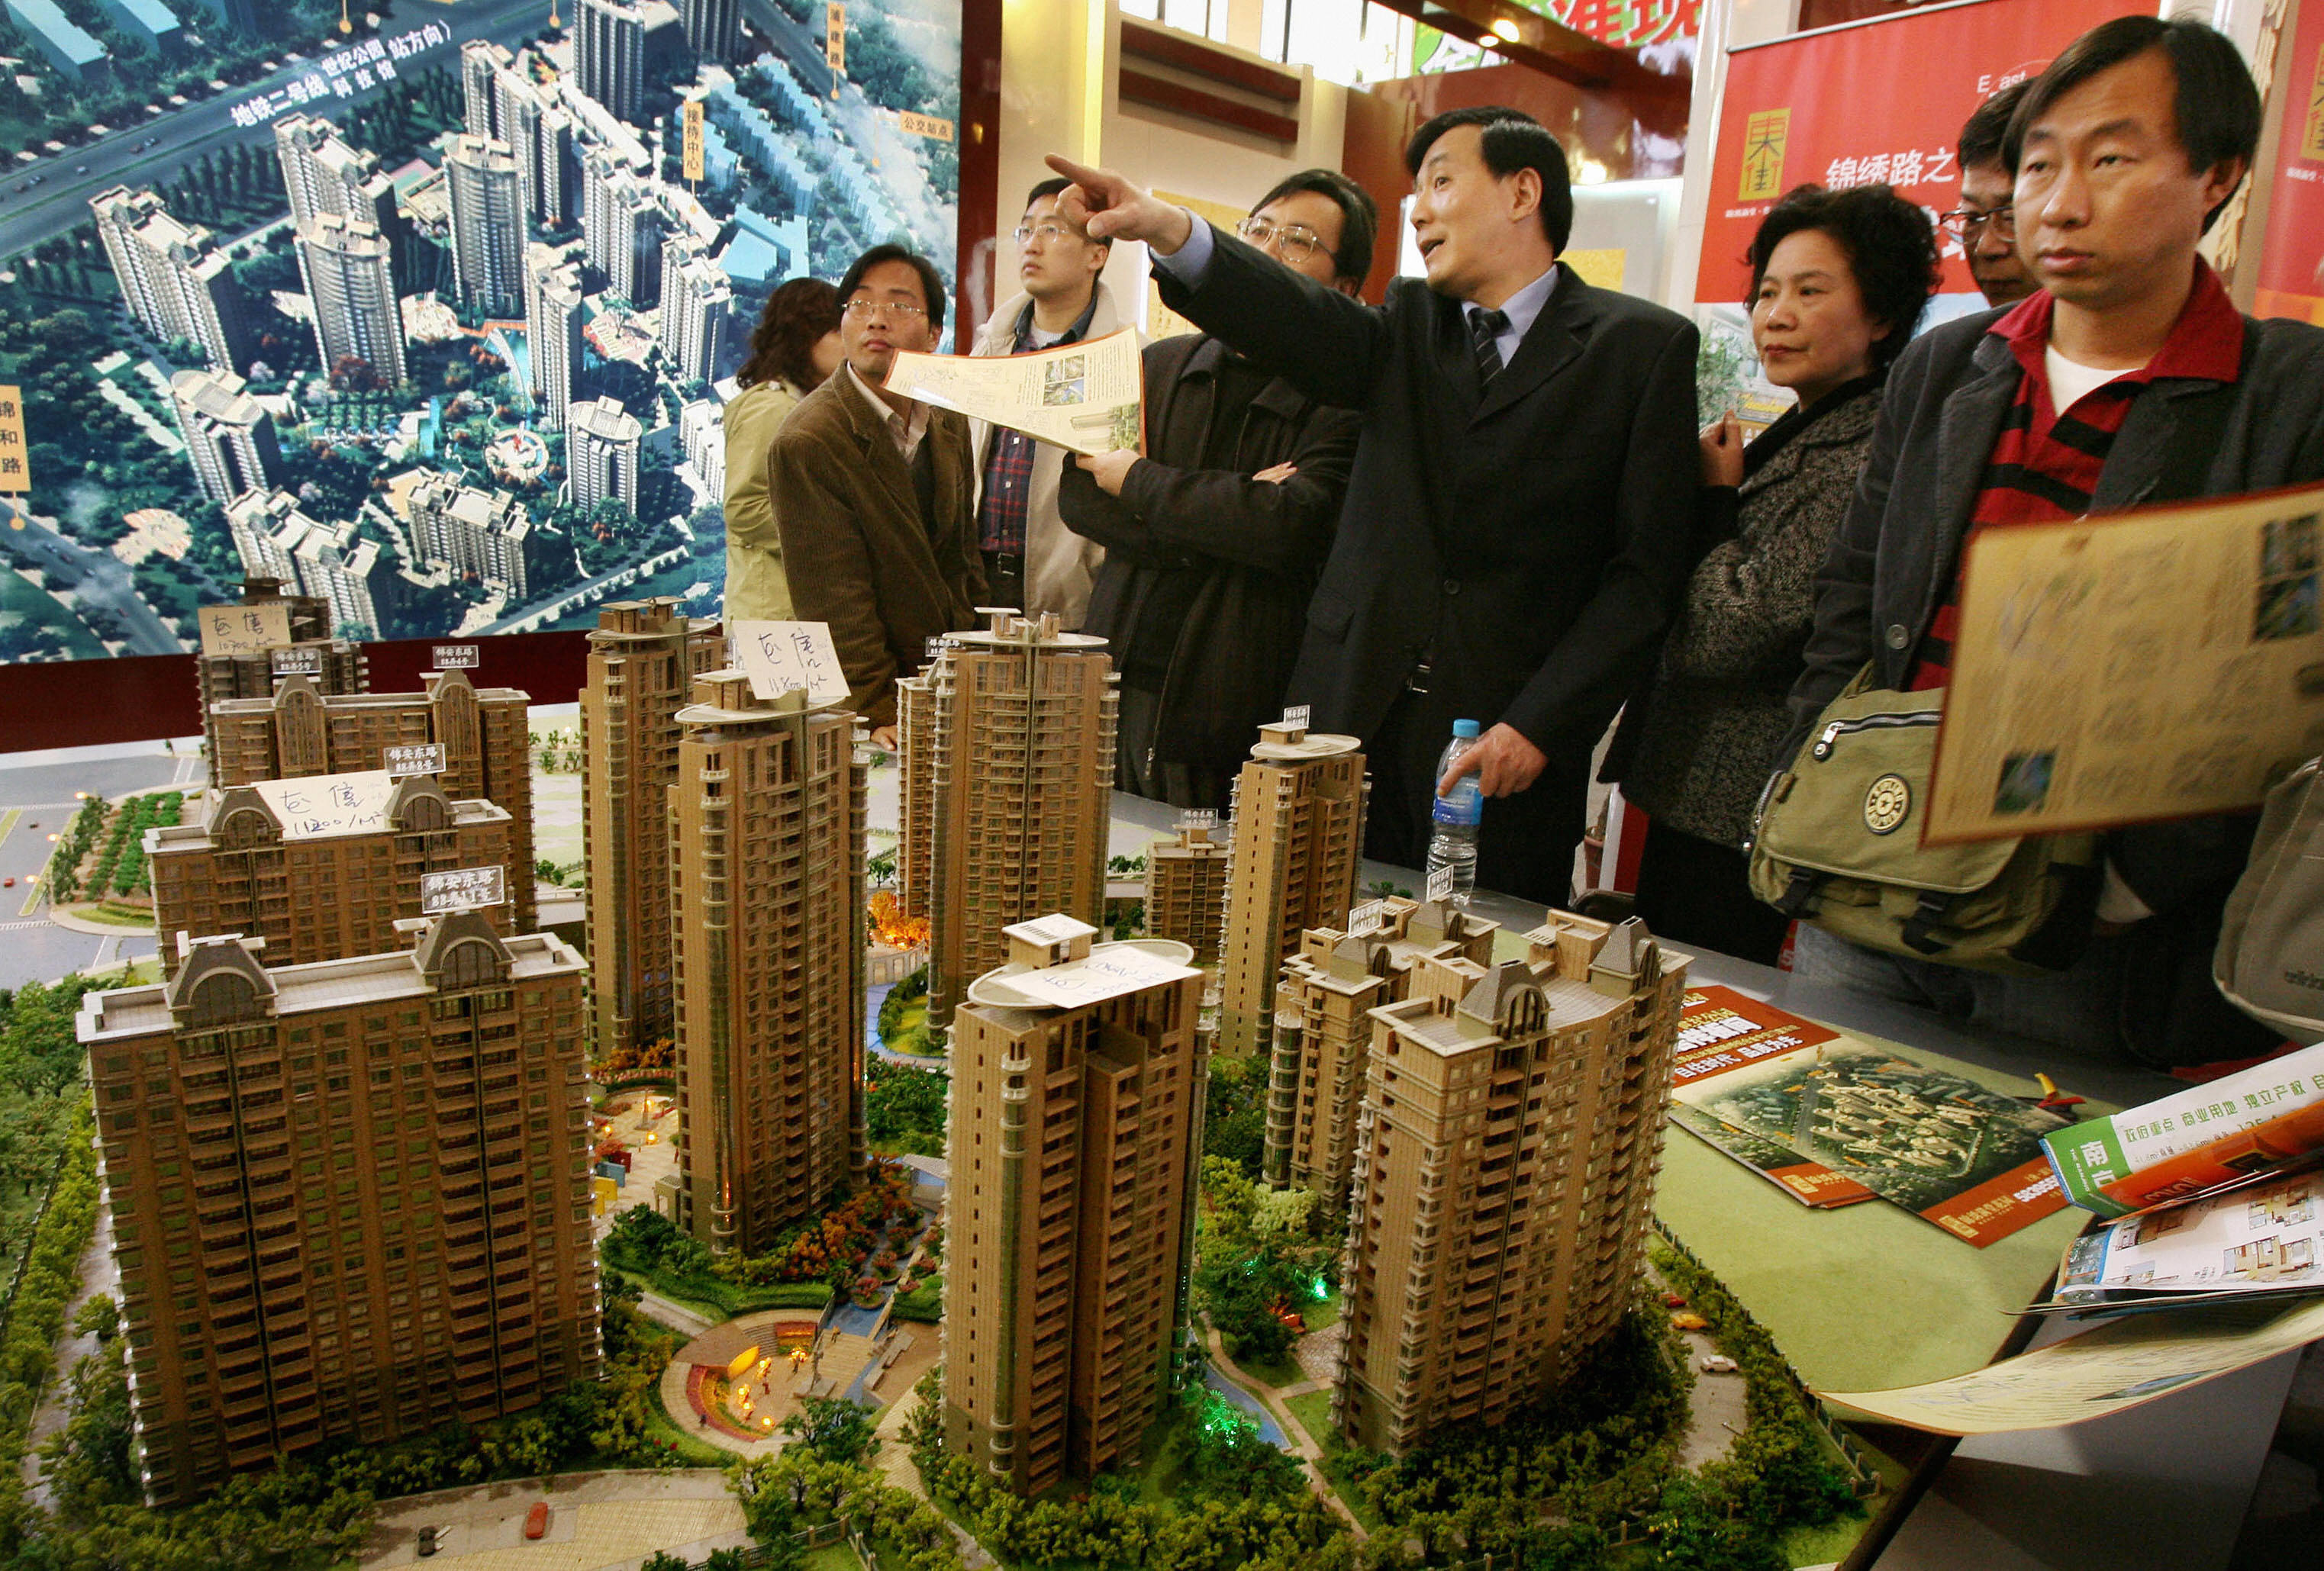 A property salesman (C) talks to potential buyers at a property exhibition in Shanghai on March 19, 2006. (MARK RALSTON/AFP/Getty Images)